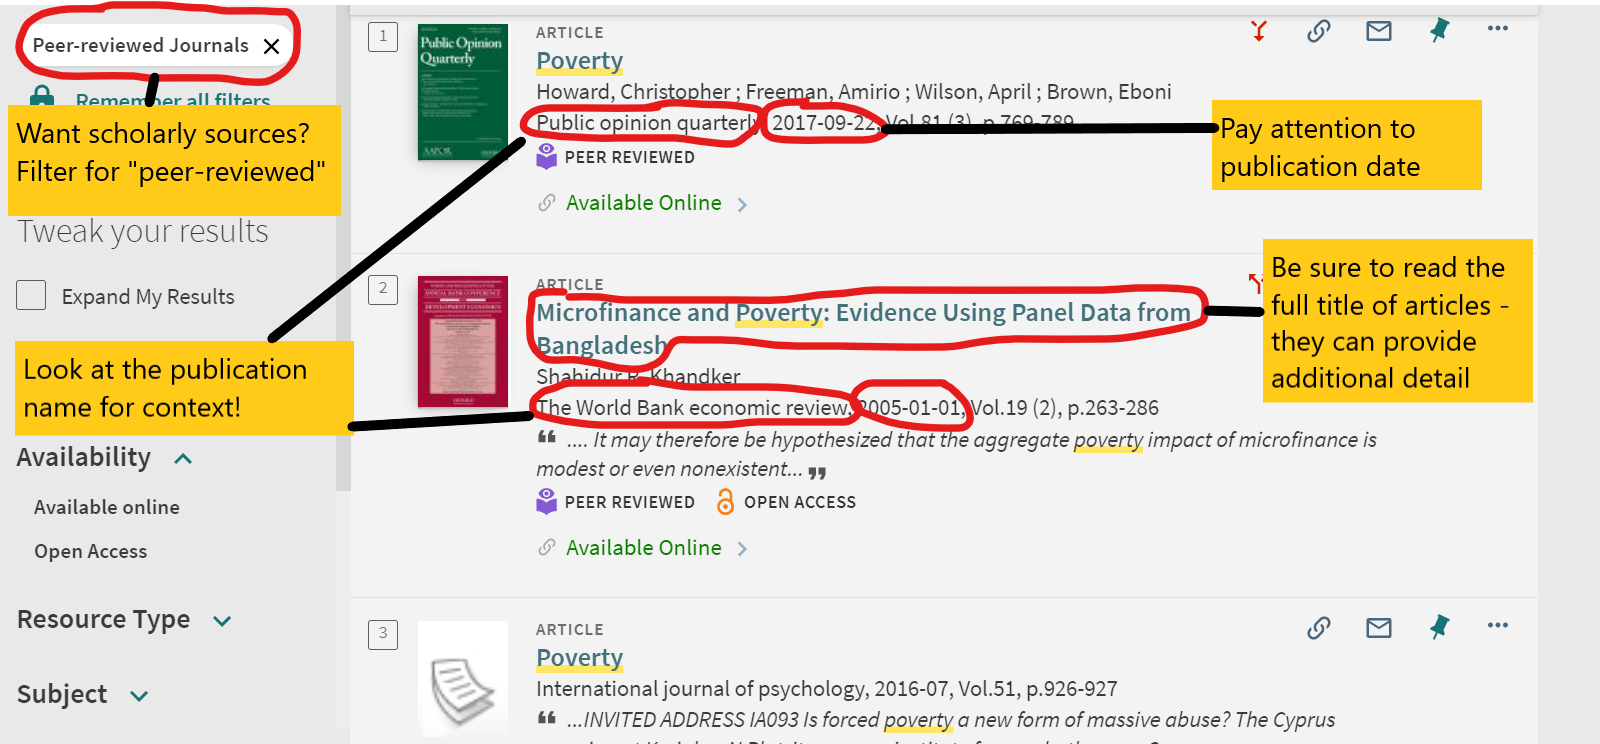 Markup of search results, highlighting peer-review filter, publication name, and publication date